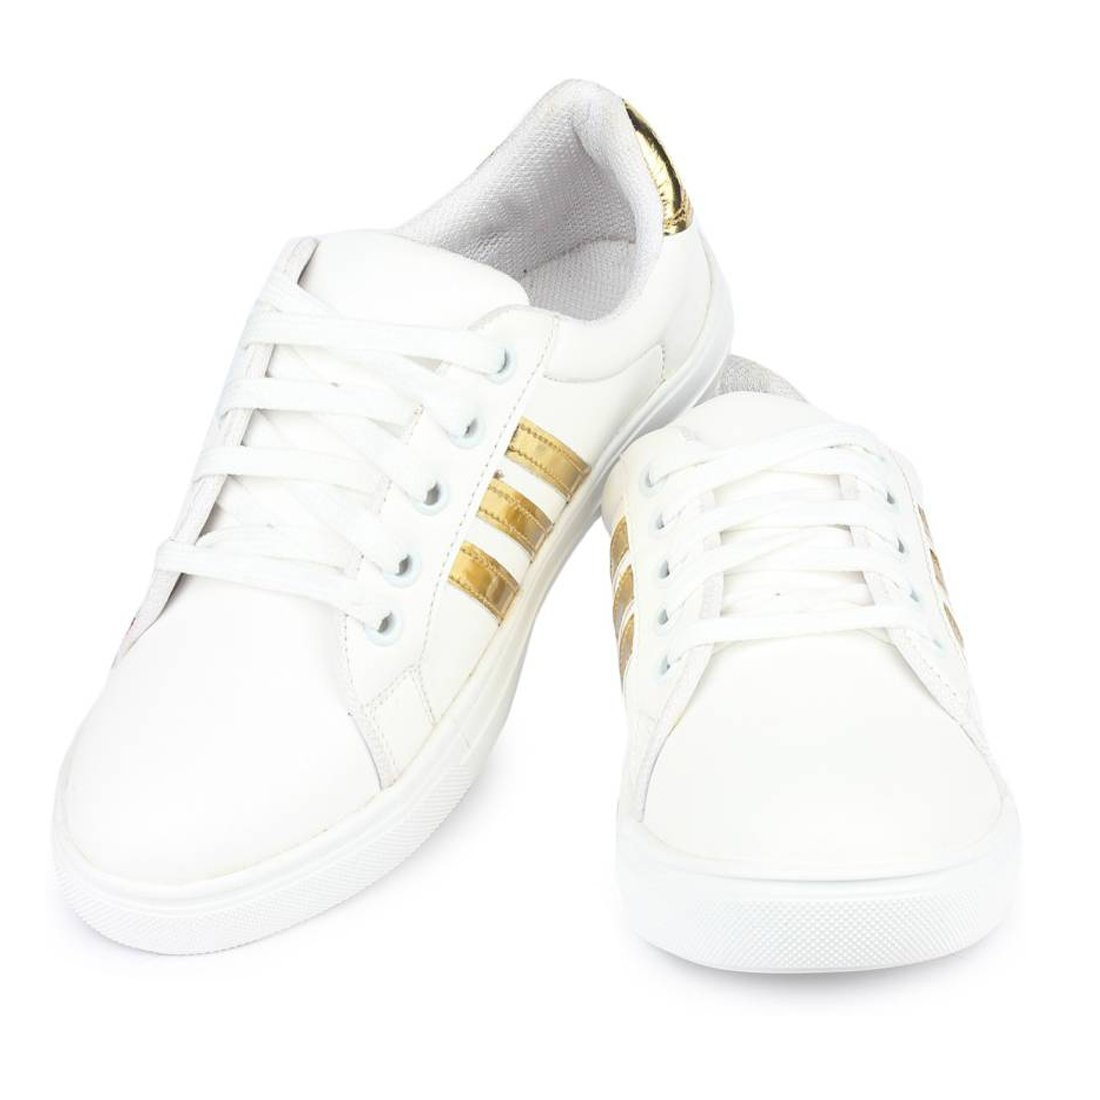 Buy Super Women White Sneaker Shoes at